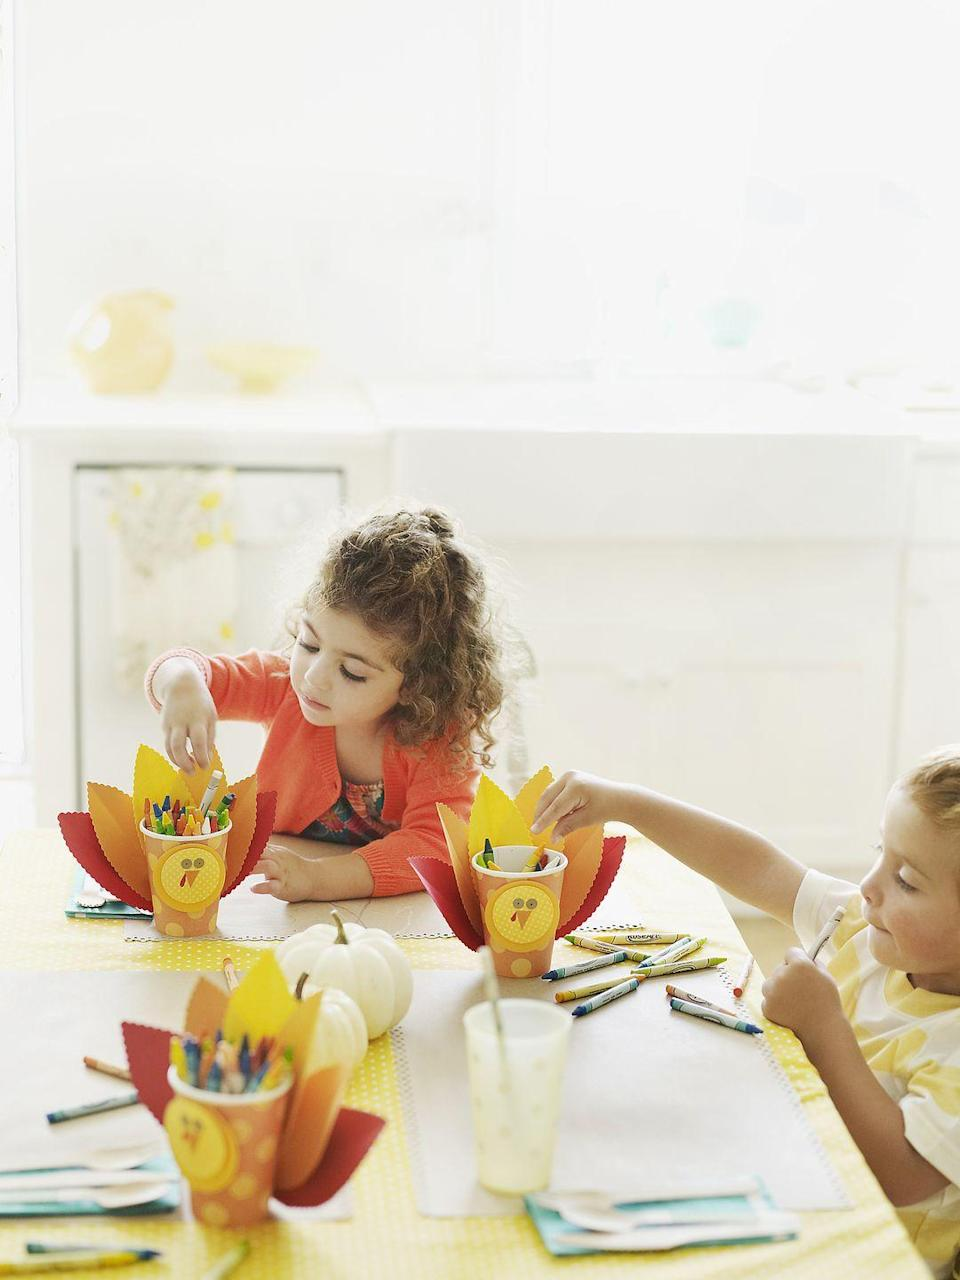 """<p>Need something to do while the turkey cooks? Try an arts and crafts project. Making something as simple as a handprint turkey will keep the kids occupied. Not to mention, it'll be a cute keepsake for years to come. </p><p><strong>RELATED: </strong><a href=""""https://www.goodhousekeeping.com/holidays/thanksgiving-ideas/g2907/thanksgiving-kids-crafts/"""" rel=""""nofollow noopener"""" target=""""_blank"""" data-ylk=""""slk:42 Easy Thanksgiving Crafts for Kids"""" class=""""link rapid-noclick-resp"""">42 Easy Thanksgiving Crafts for Kids</a></p>"""